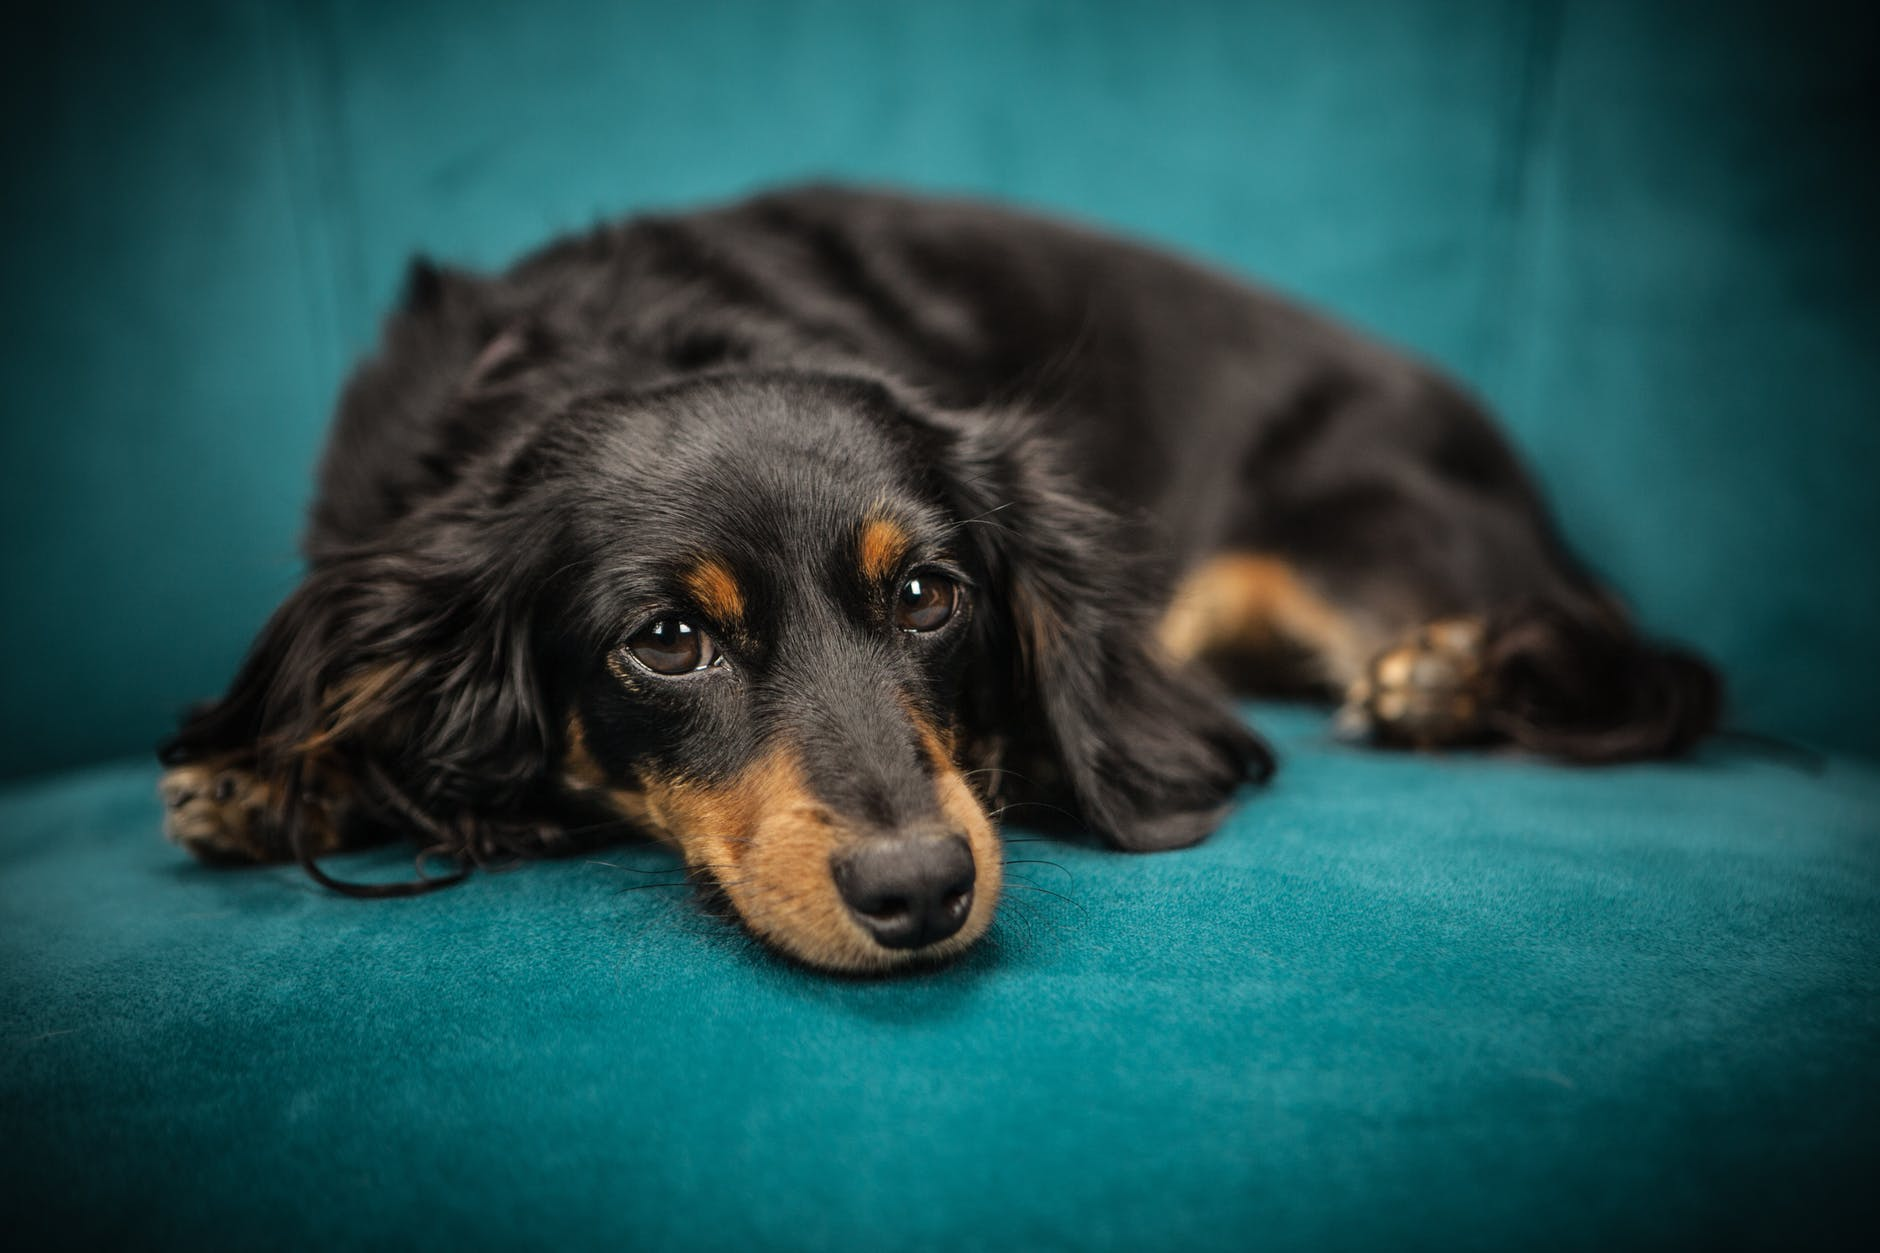 dog relaxing on a sofa. how to trim black dog nails